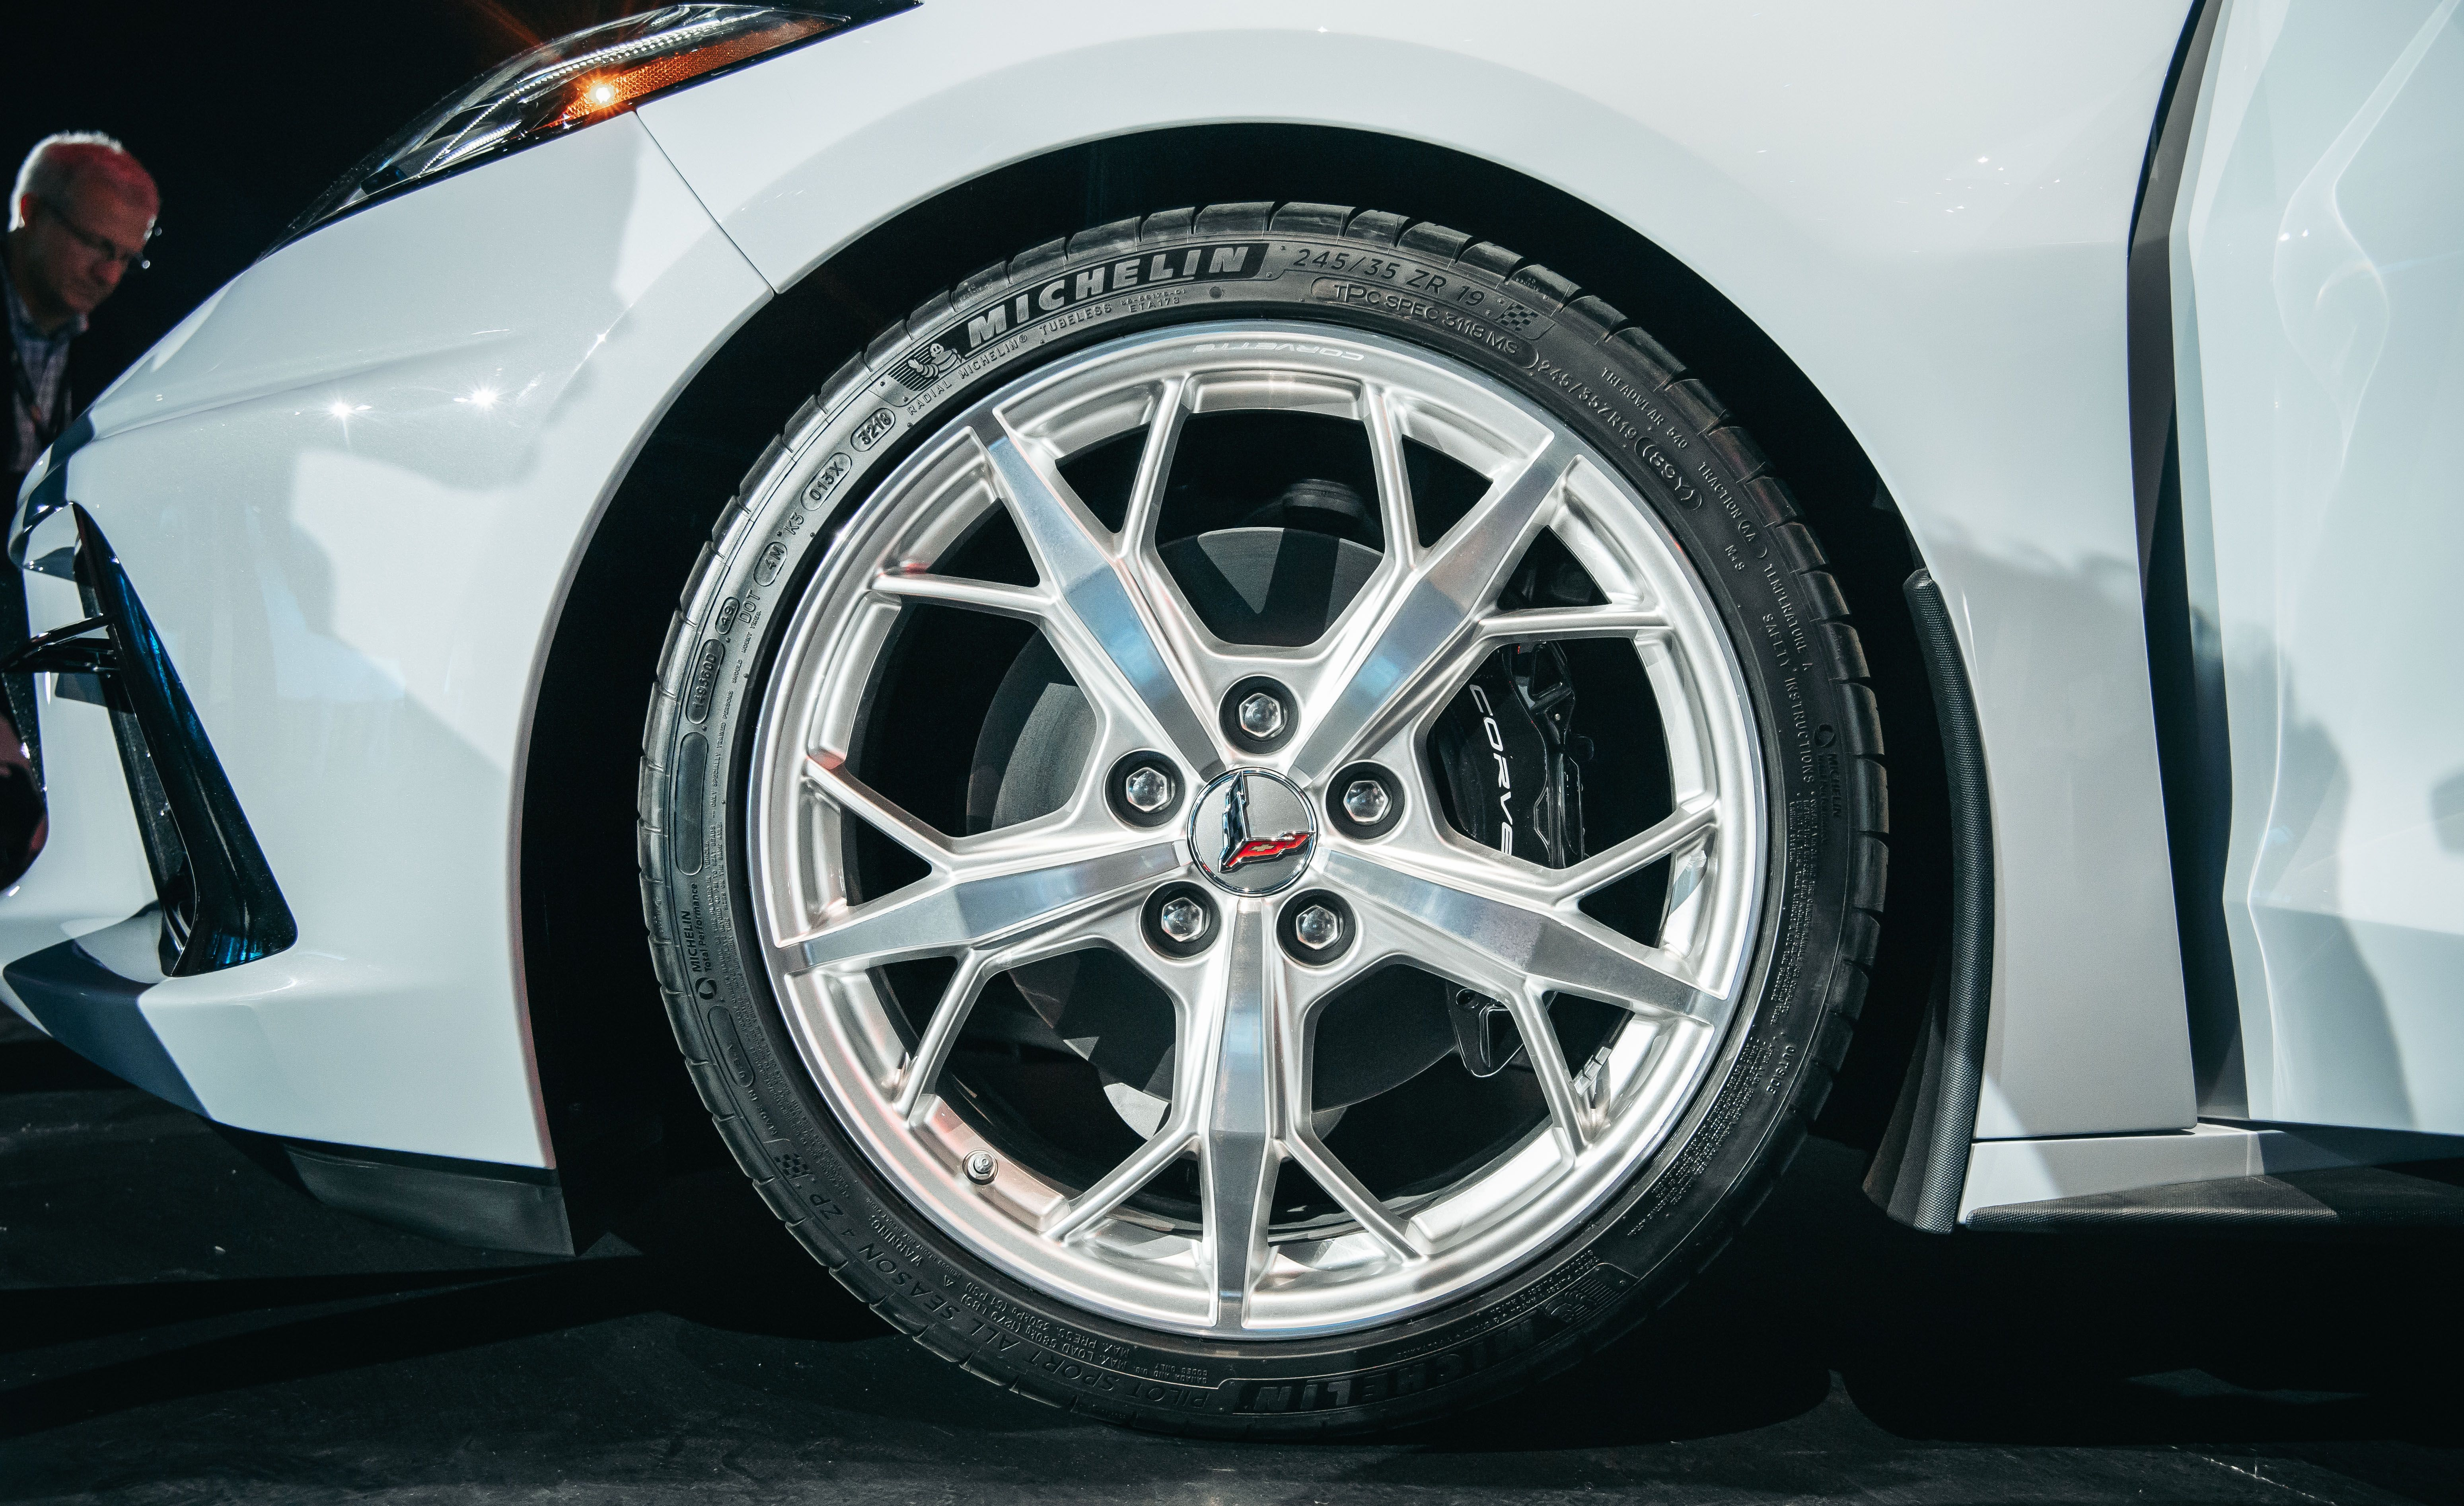 Best All Season Tires For Snow 2020 The Base 2020 Corvette Comes with All Season Tires. Here's Why